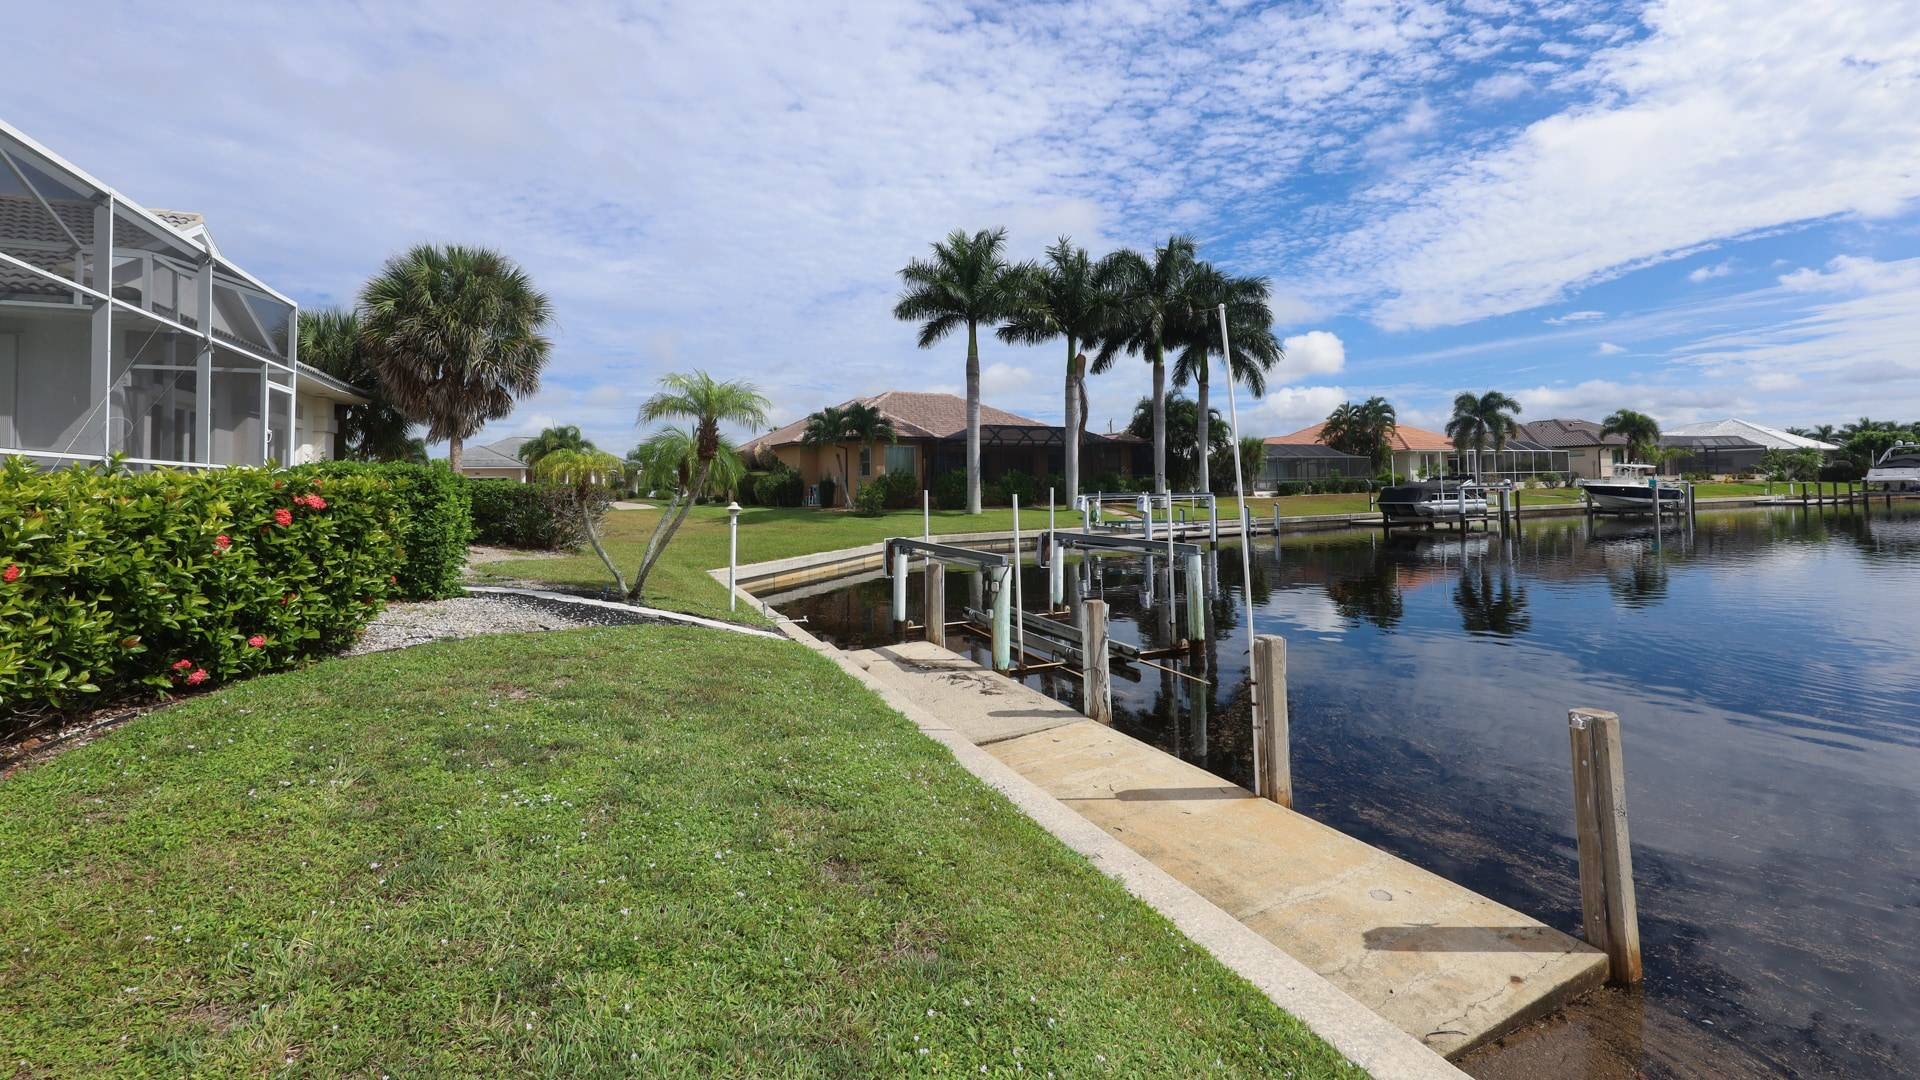 3836 Paola Dr-212791